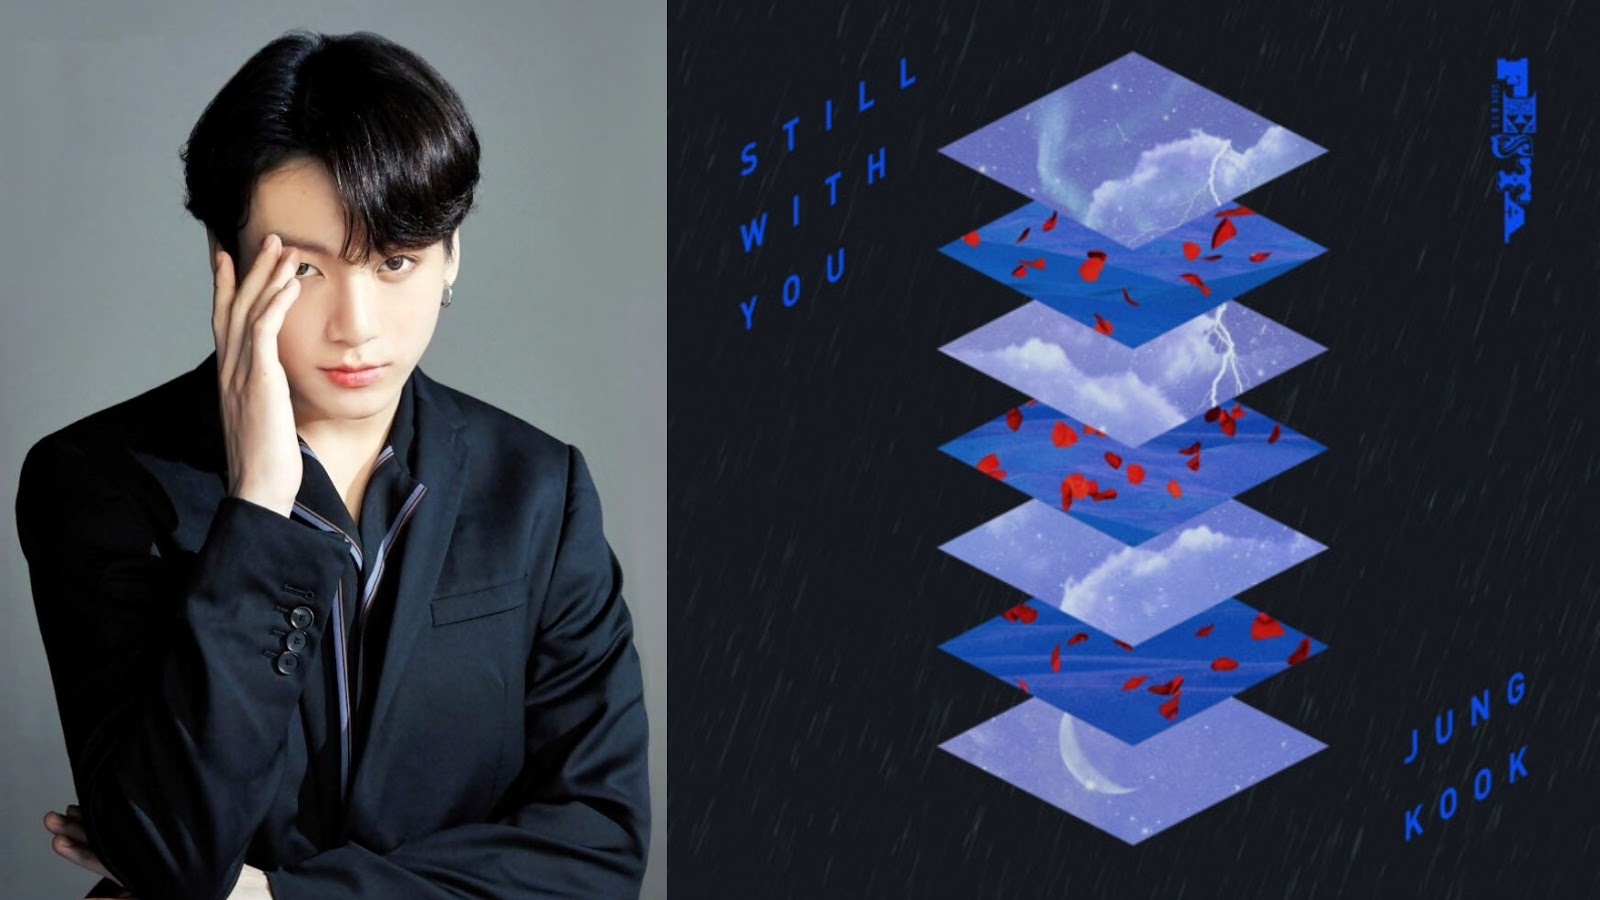 BTS' Jungkook Releases a Song 'Still With You' For 'BTS FESTA 2020'